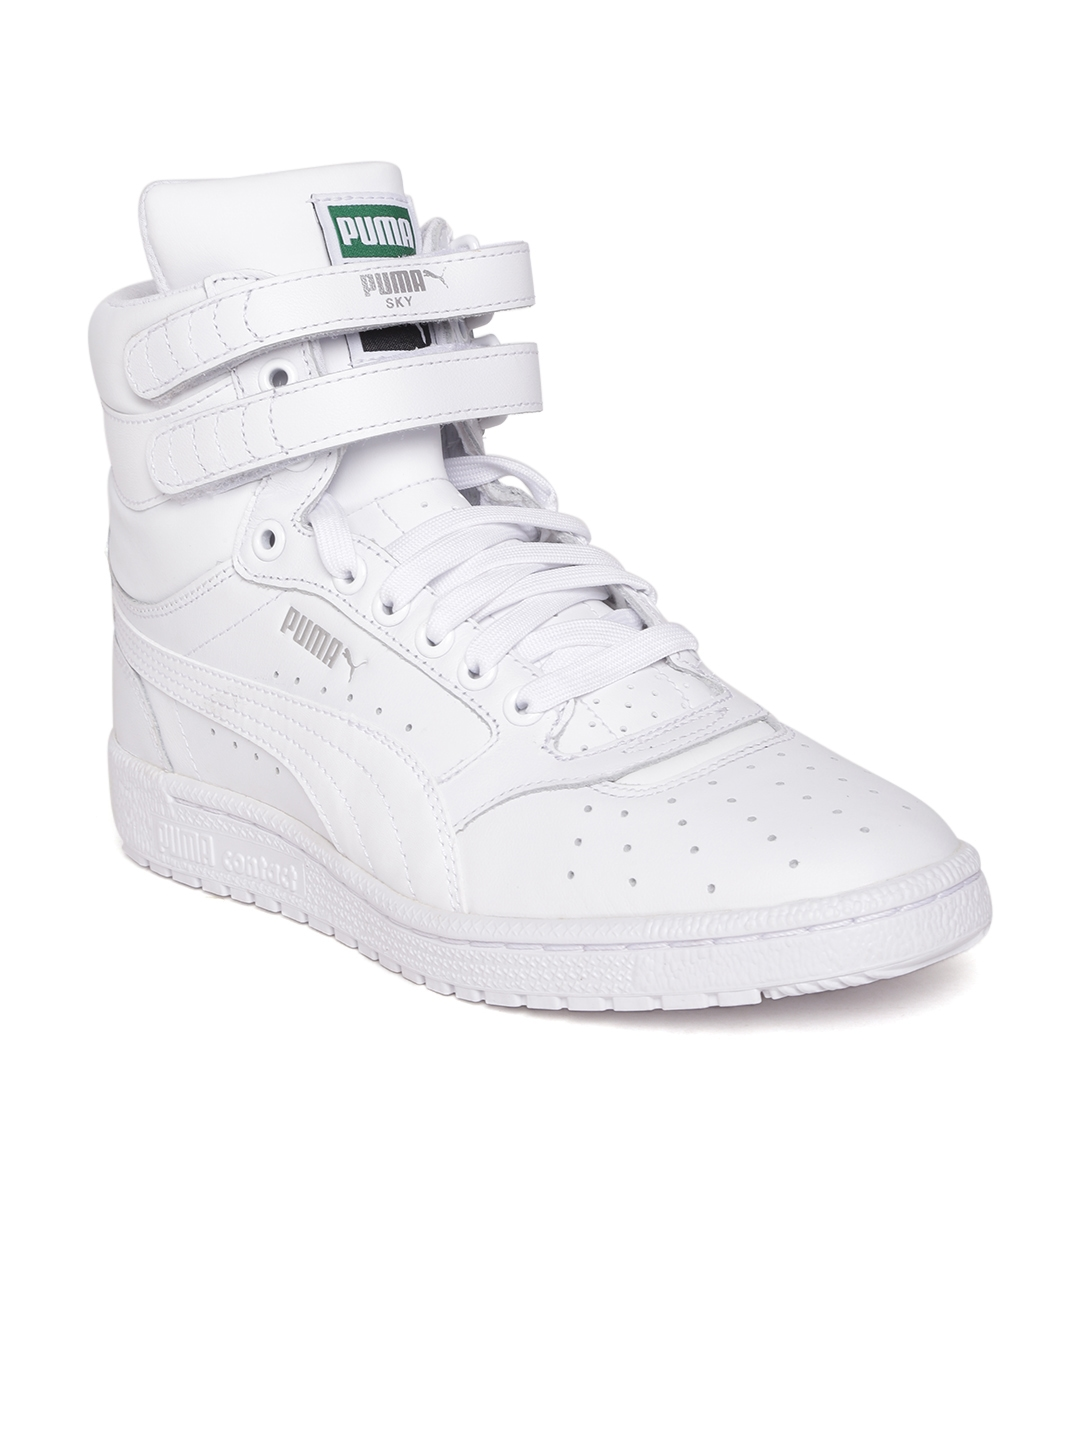 Buy PUMA Men White Sky II High Top Leather Casual Shoes - Casual ... 36881720d772